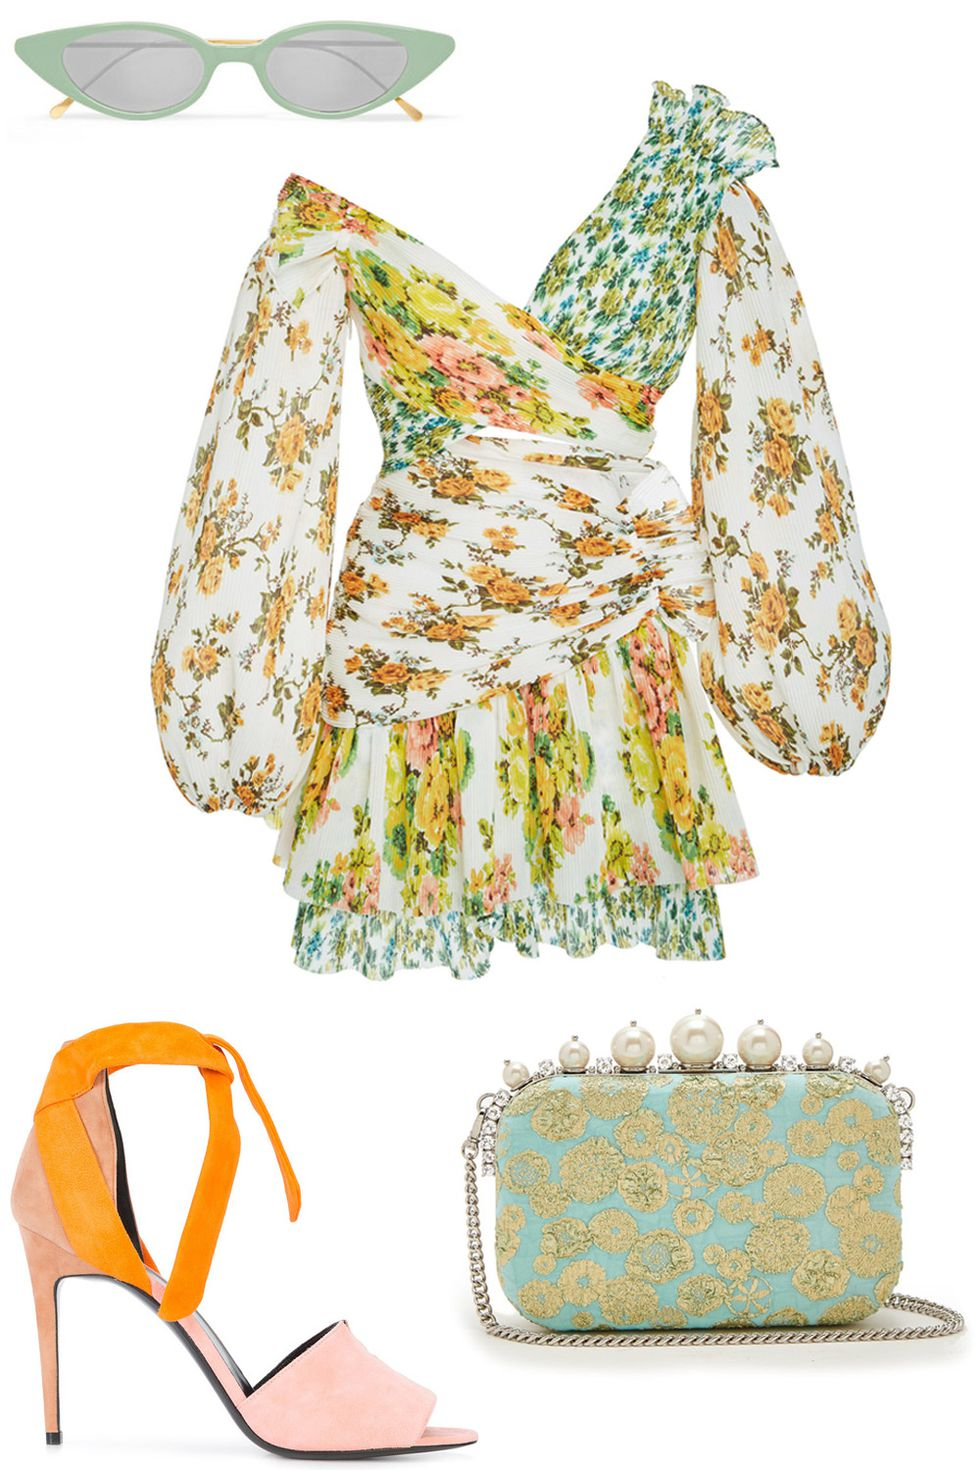 what-to-wear-for-a-summer-wedding-guest-outfit-white-dress-yellow-dress-peasant-print-floral-yellow-shoe-sandalh-sun-dinner.jpg